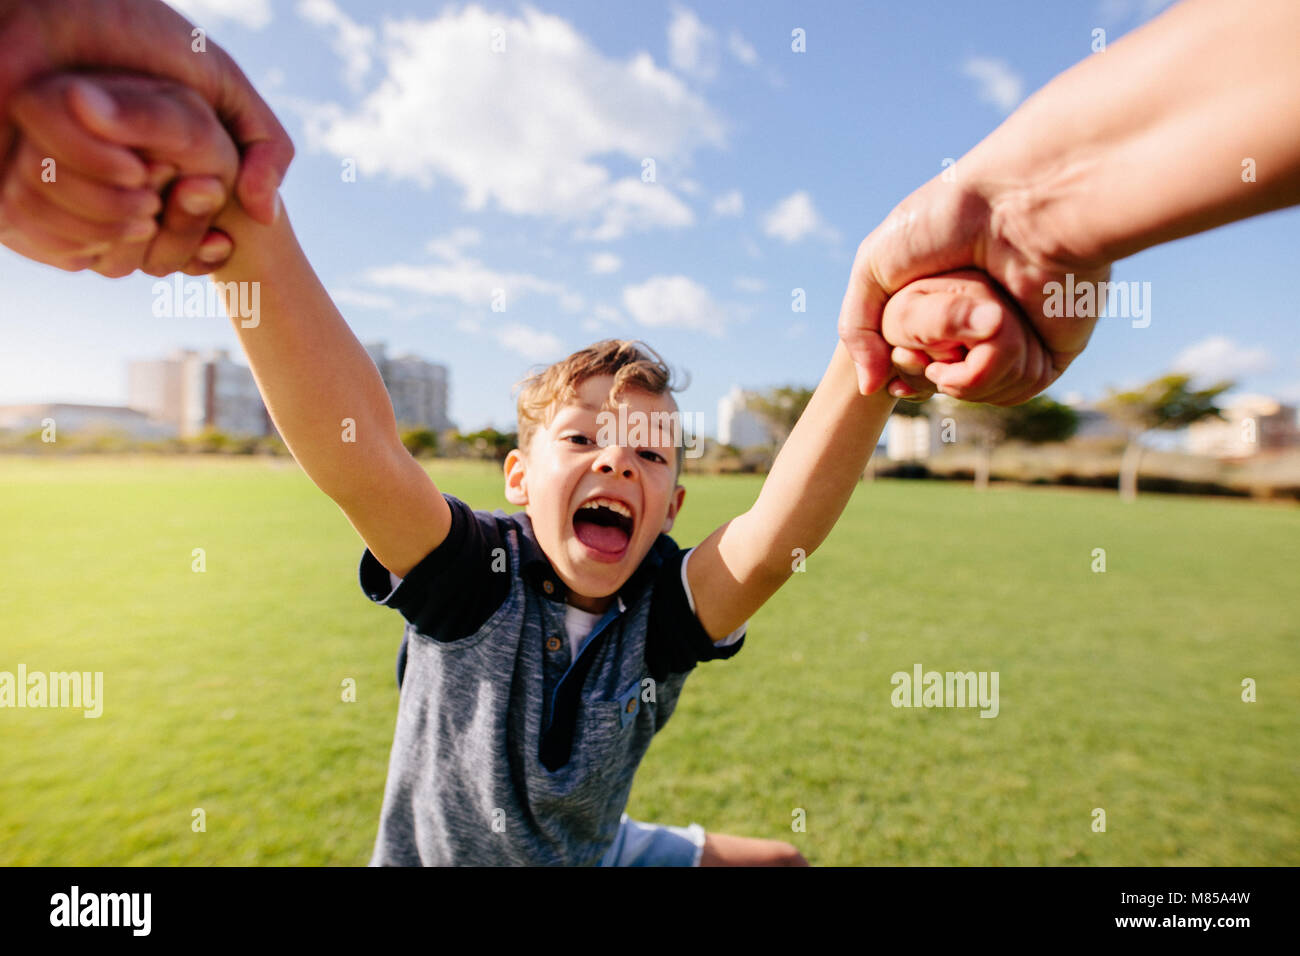 Cheerful boy enjoys being lifted in air while playing in a park. Close up of a boy in playful mood at a park. - Stock Image